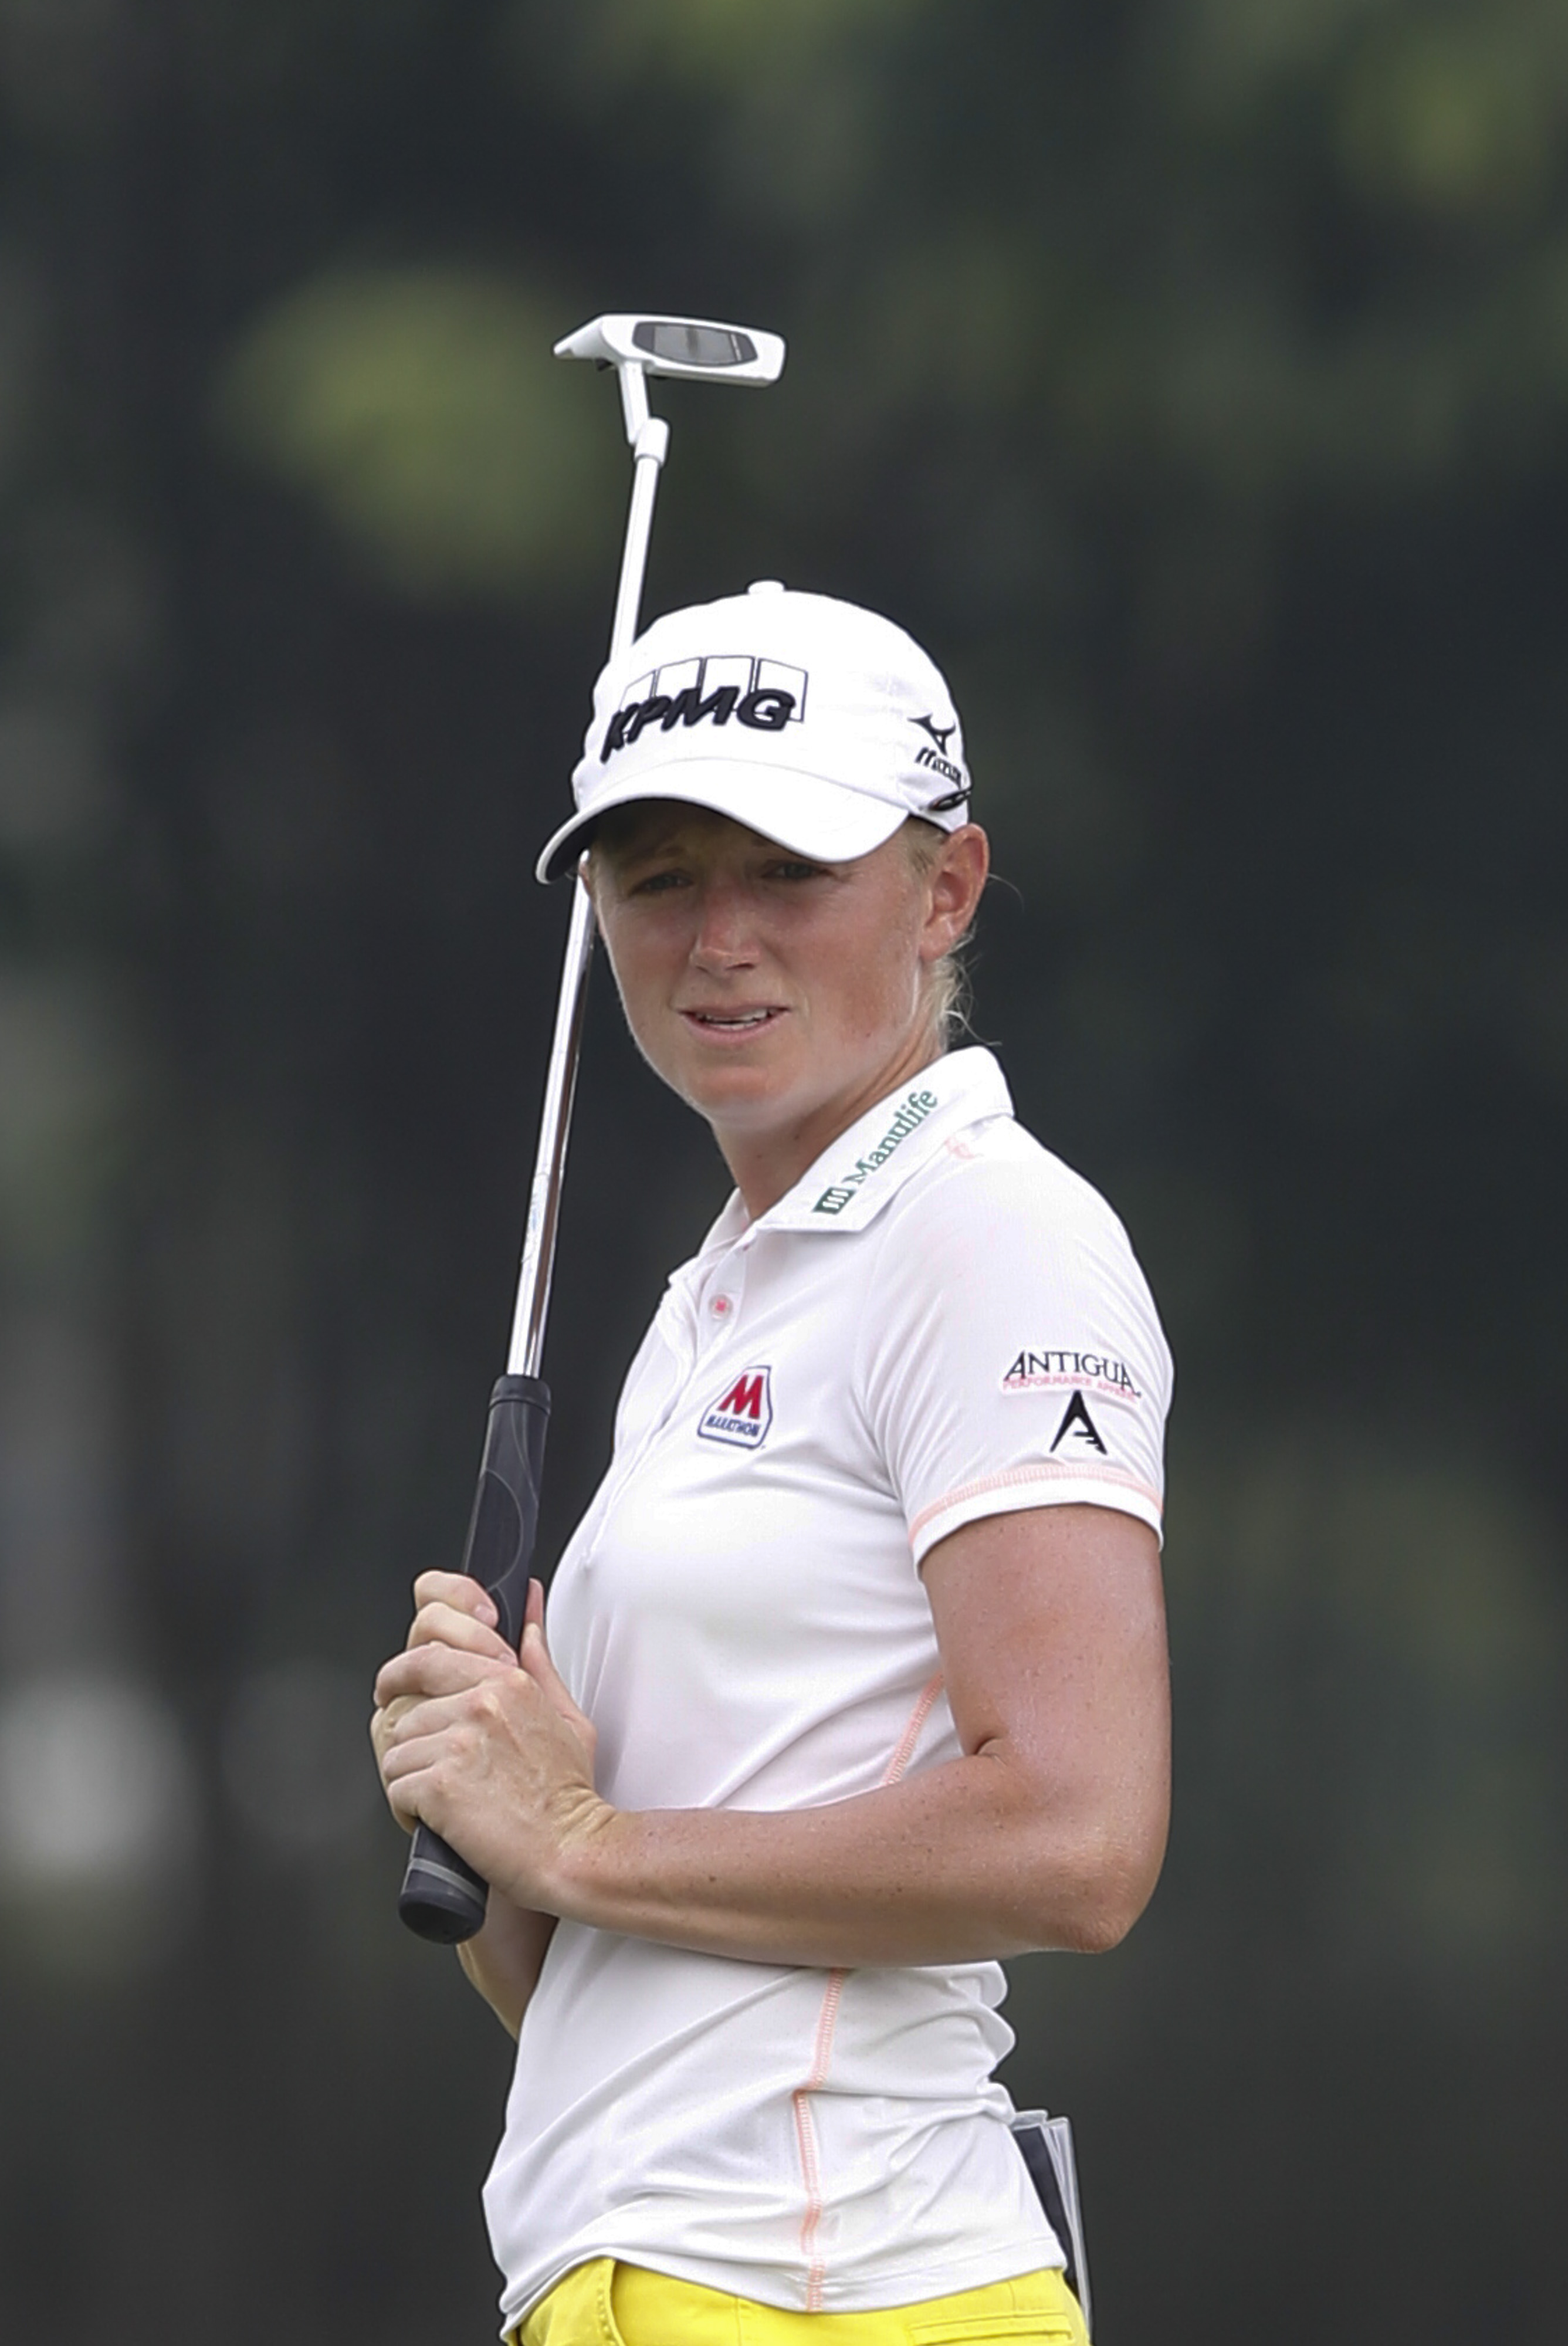 Stacy Lewis of the United States reacts after missing a shot on the sixth green during the first round of the LPGA Malaysia golf tournament at Kuala Lumpur Golf and Country Club in Kuala Lumpur, Malaysia on Thursday, Oct. 8, 2015. (AP Photo/Joshua Paul)